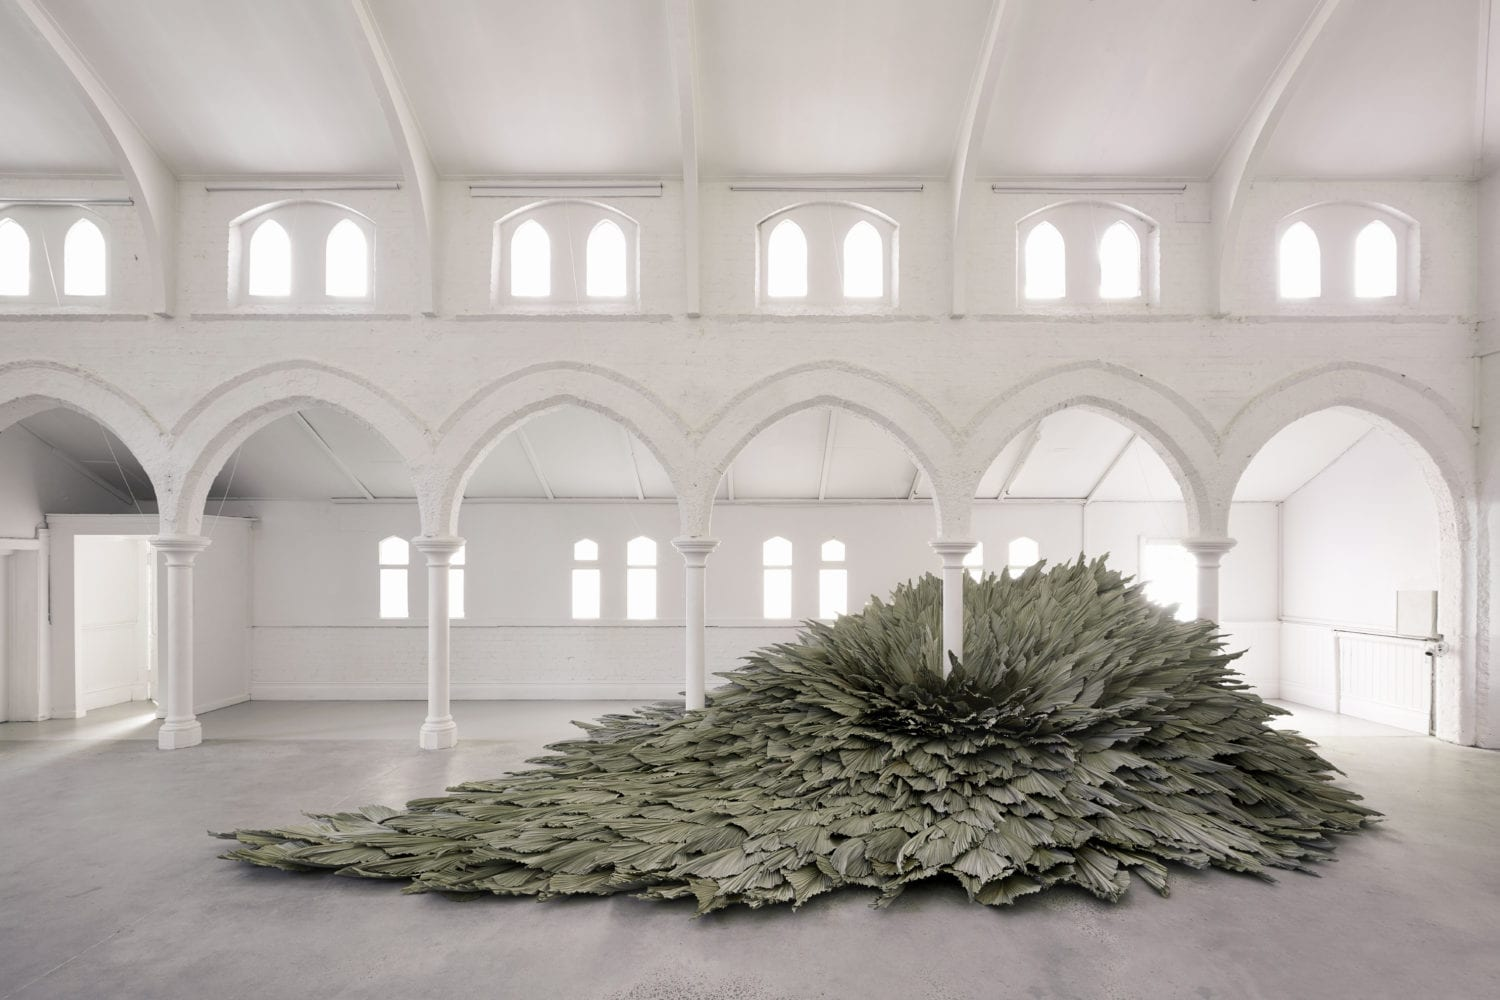 Proximity Botanical Installation By Wona Bae And Charlie Lawler Of Loose Leaf Yellowtrace 02